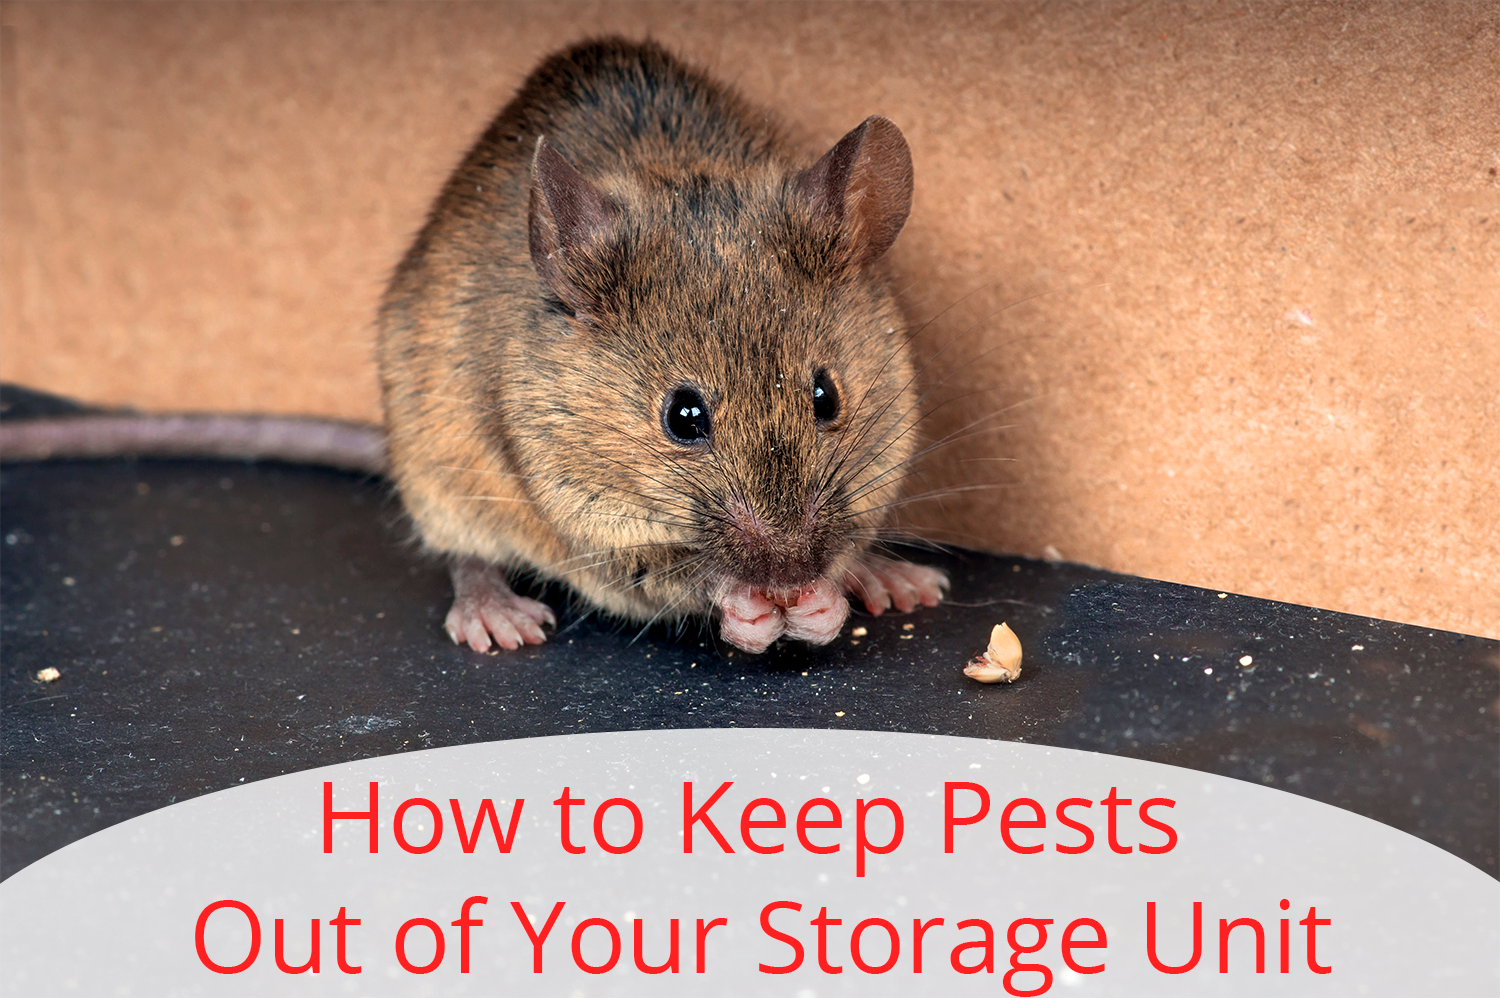 A brown mouse eating a seed next to a cardboard box. If only the storage unit owner knew about how to keep pests out of your storage unit.